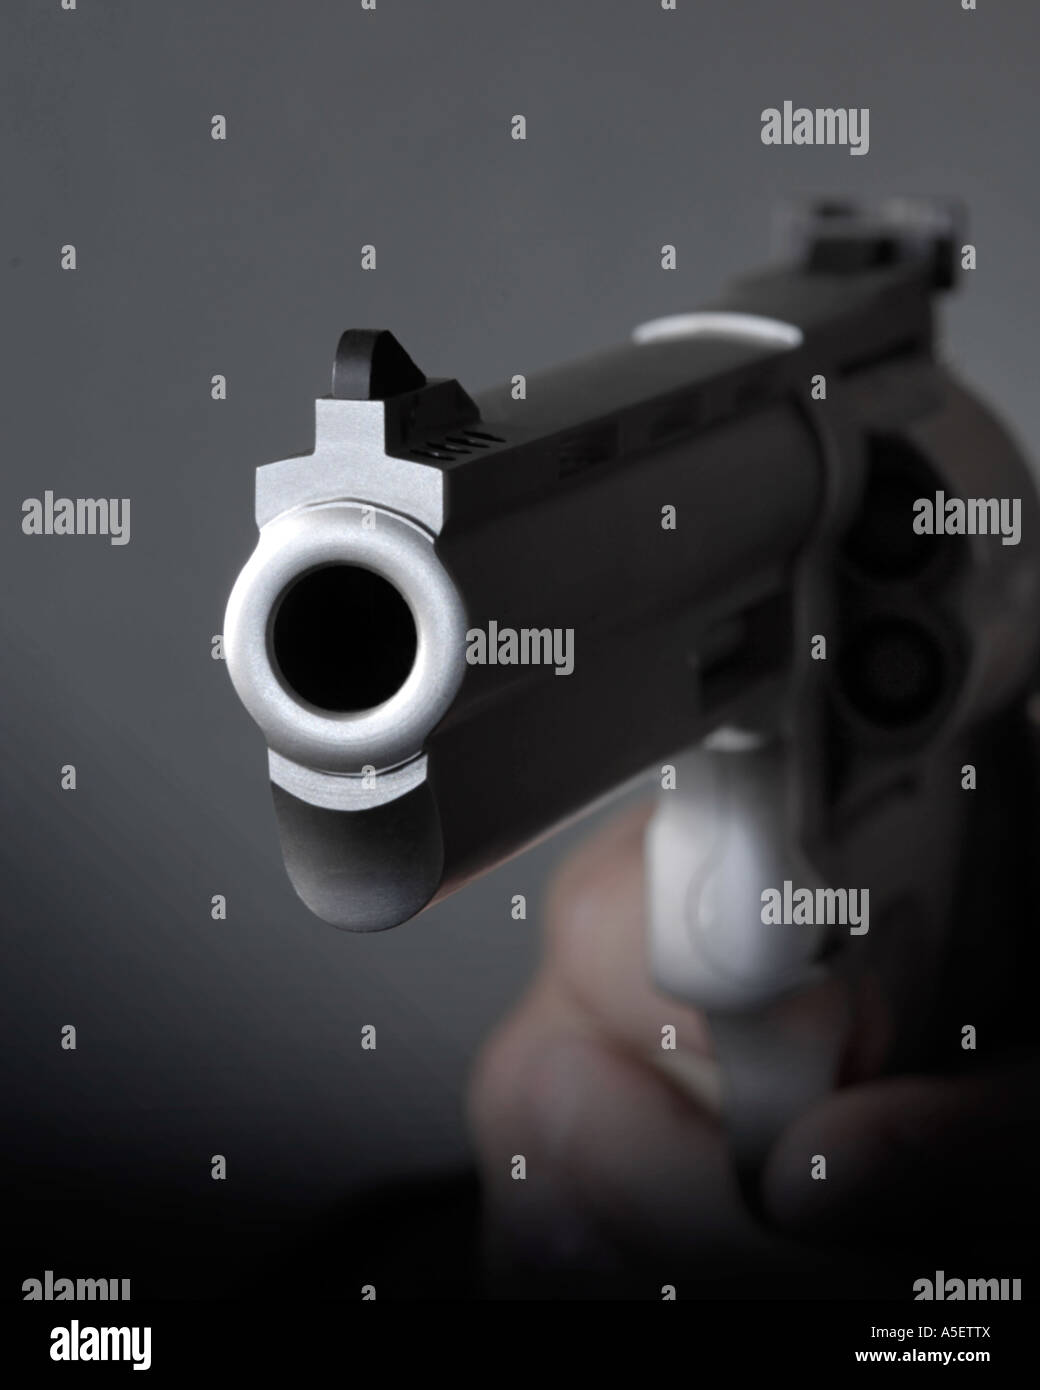 Looking Down The Barrel Of A Pistol Stock Photo Alamy